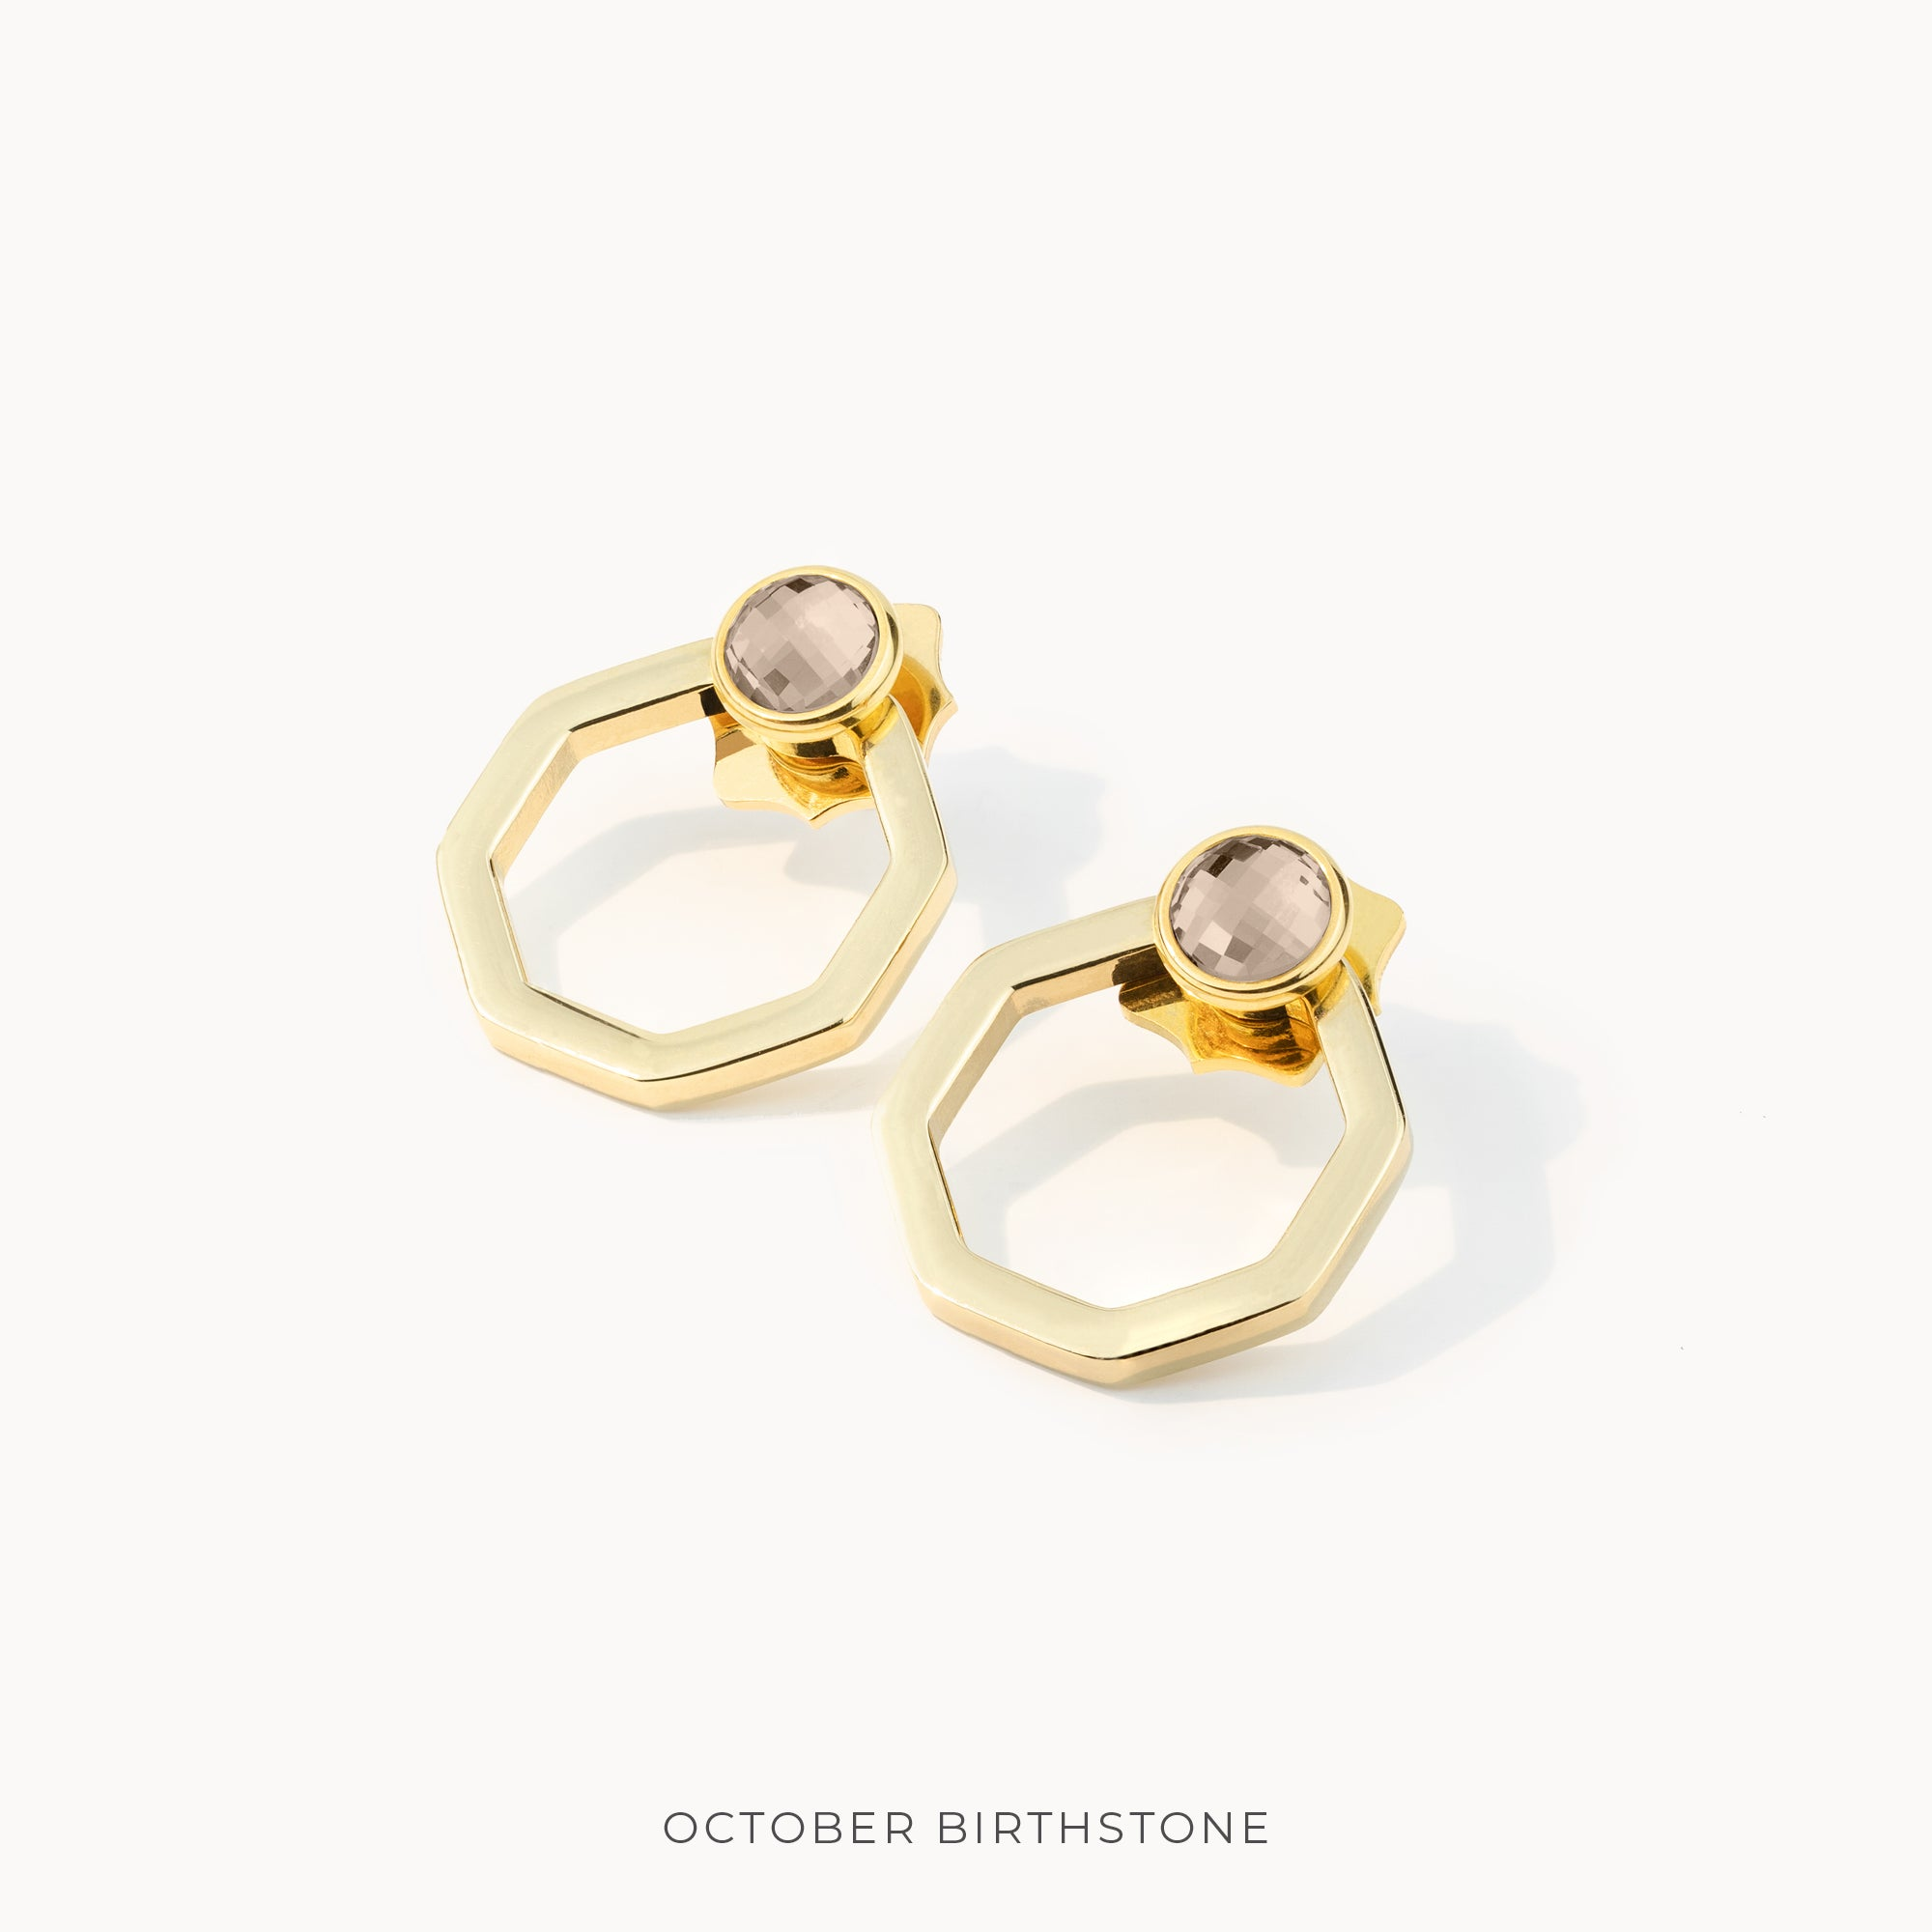 Birthstone Octagon Habbata Earring Pendants Set, Gold